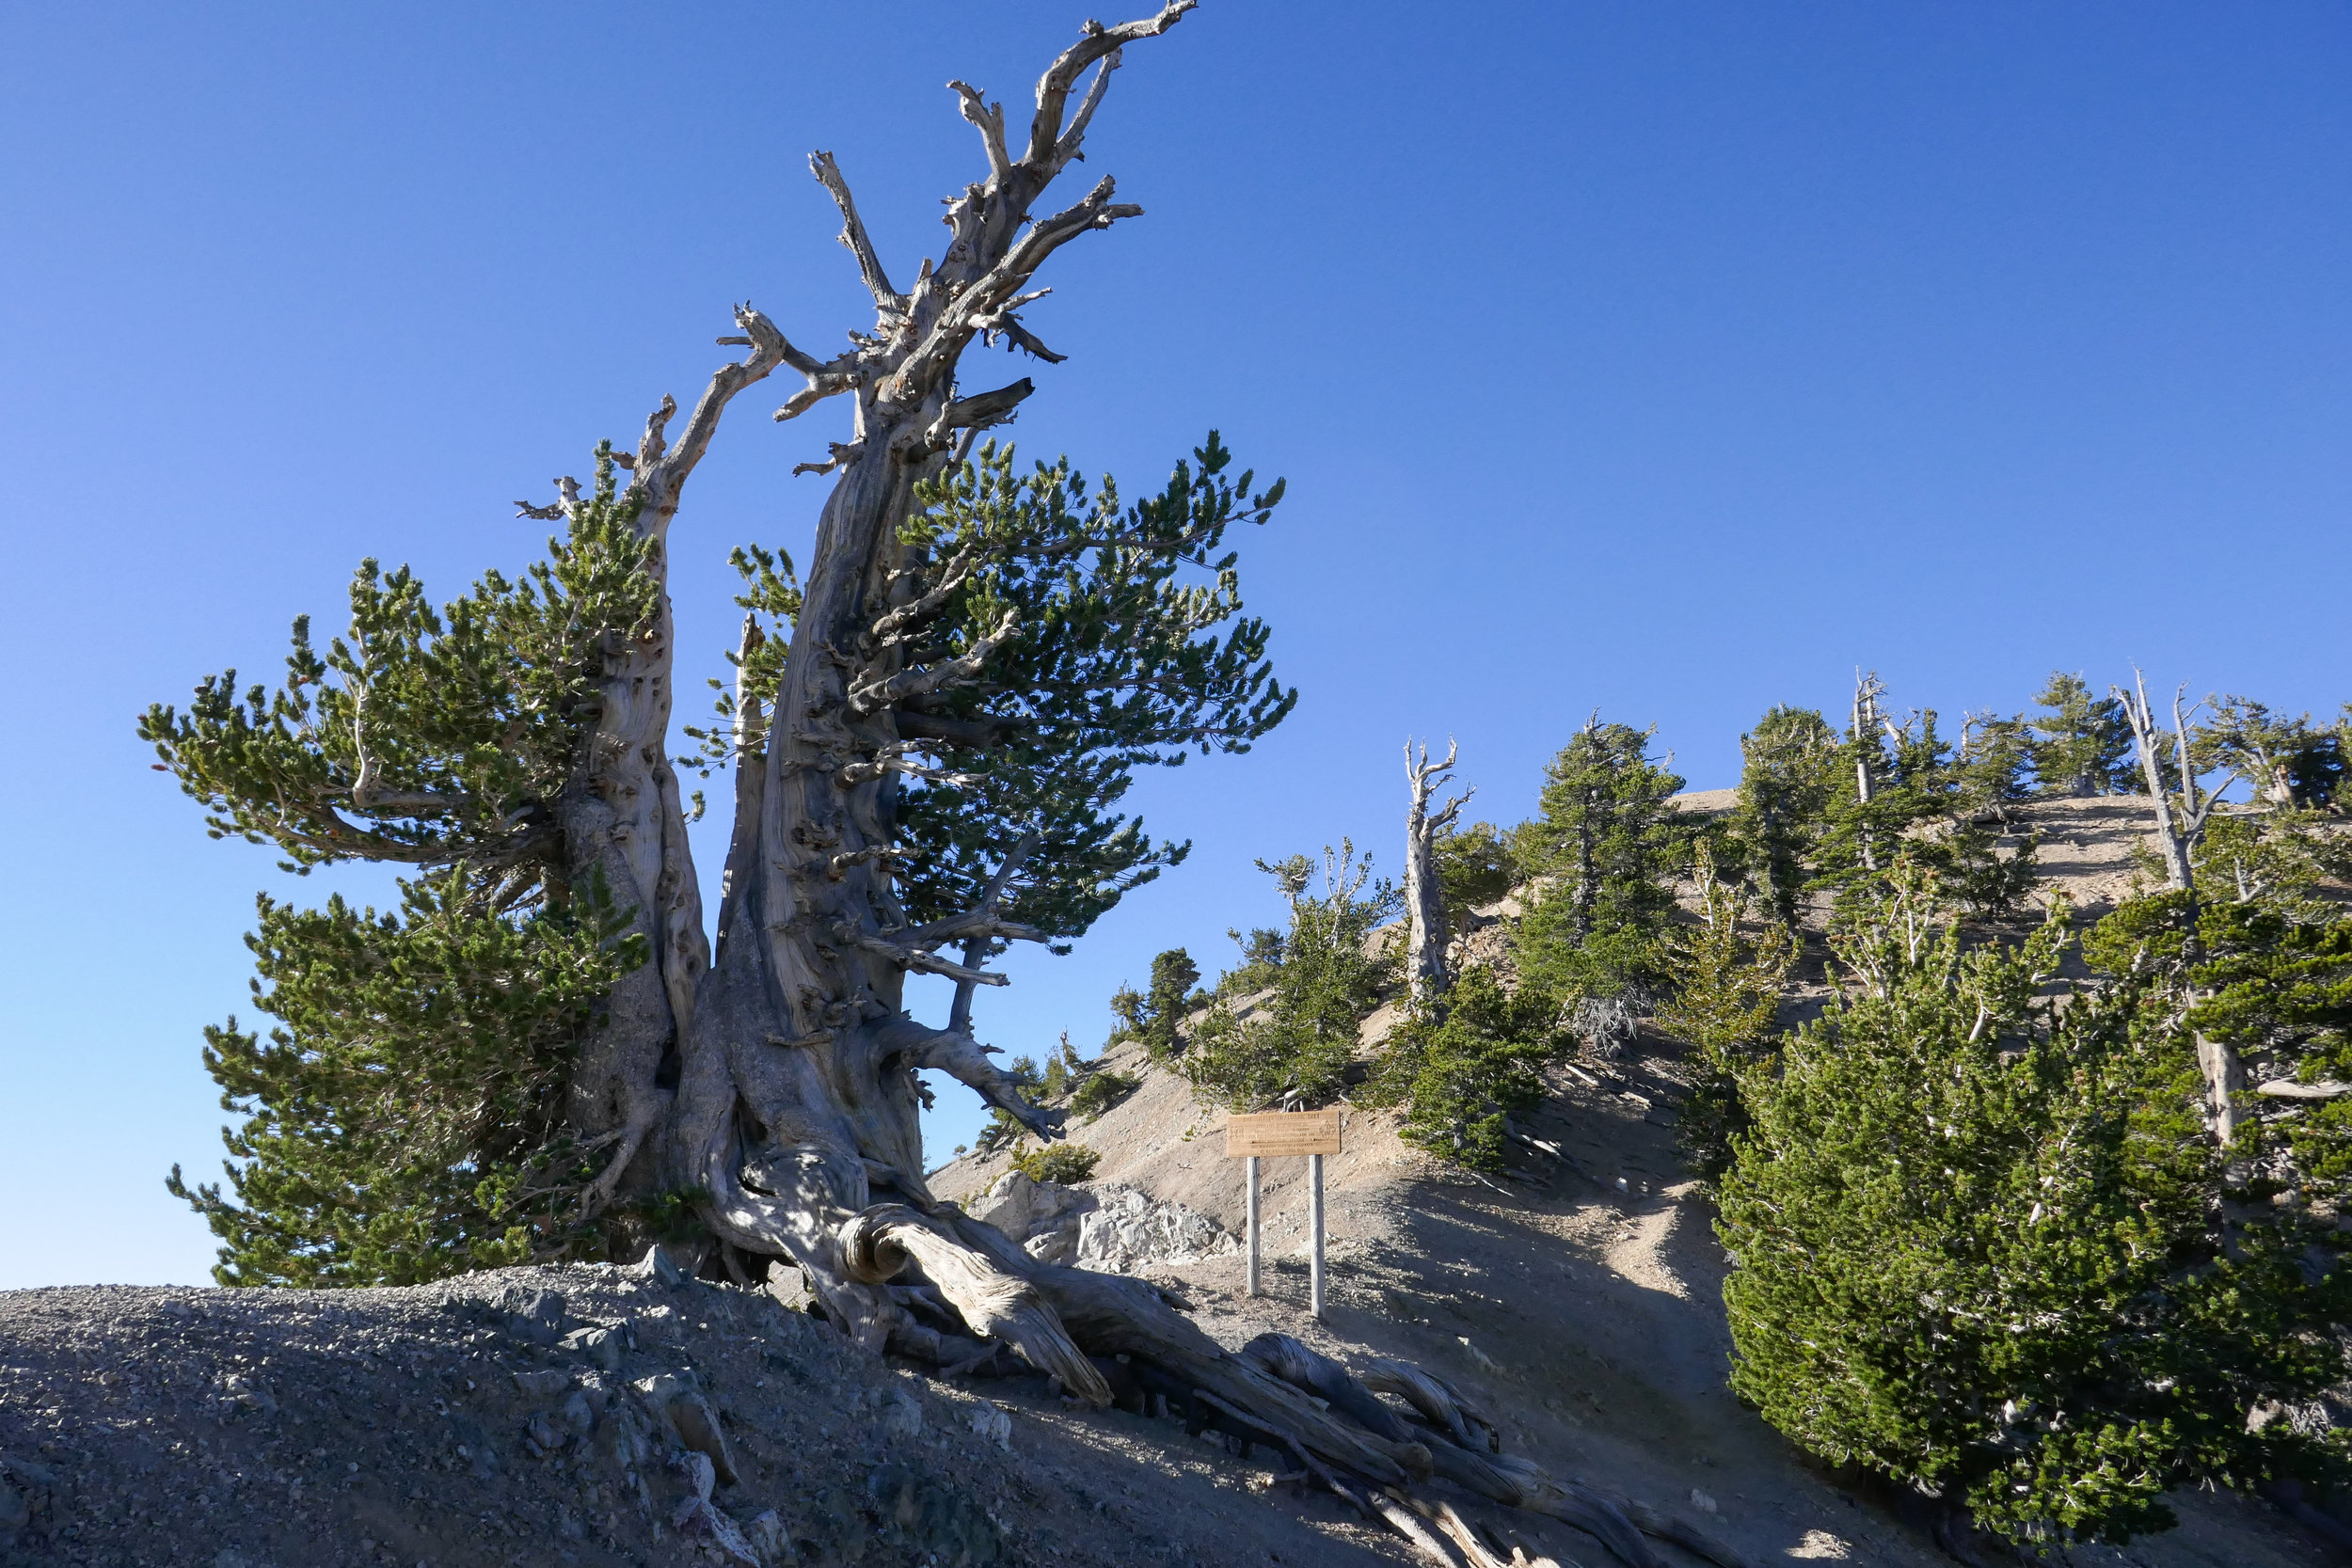 I didn't take a ton of photos along the way, but once we approached the ridge and the Wally Waldron tree and the limber pines came into view, I started snapping away.